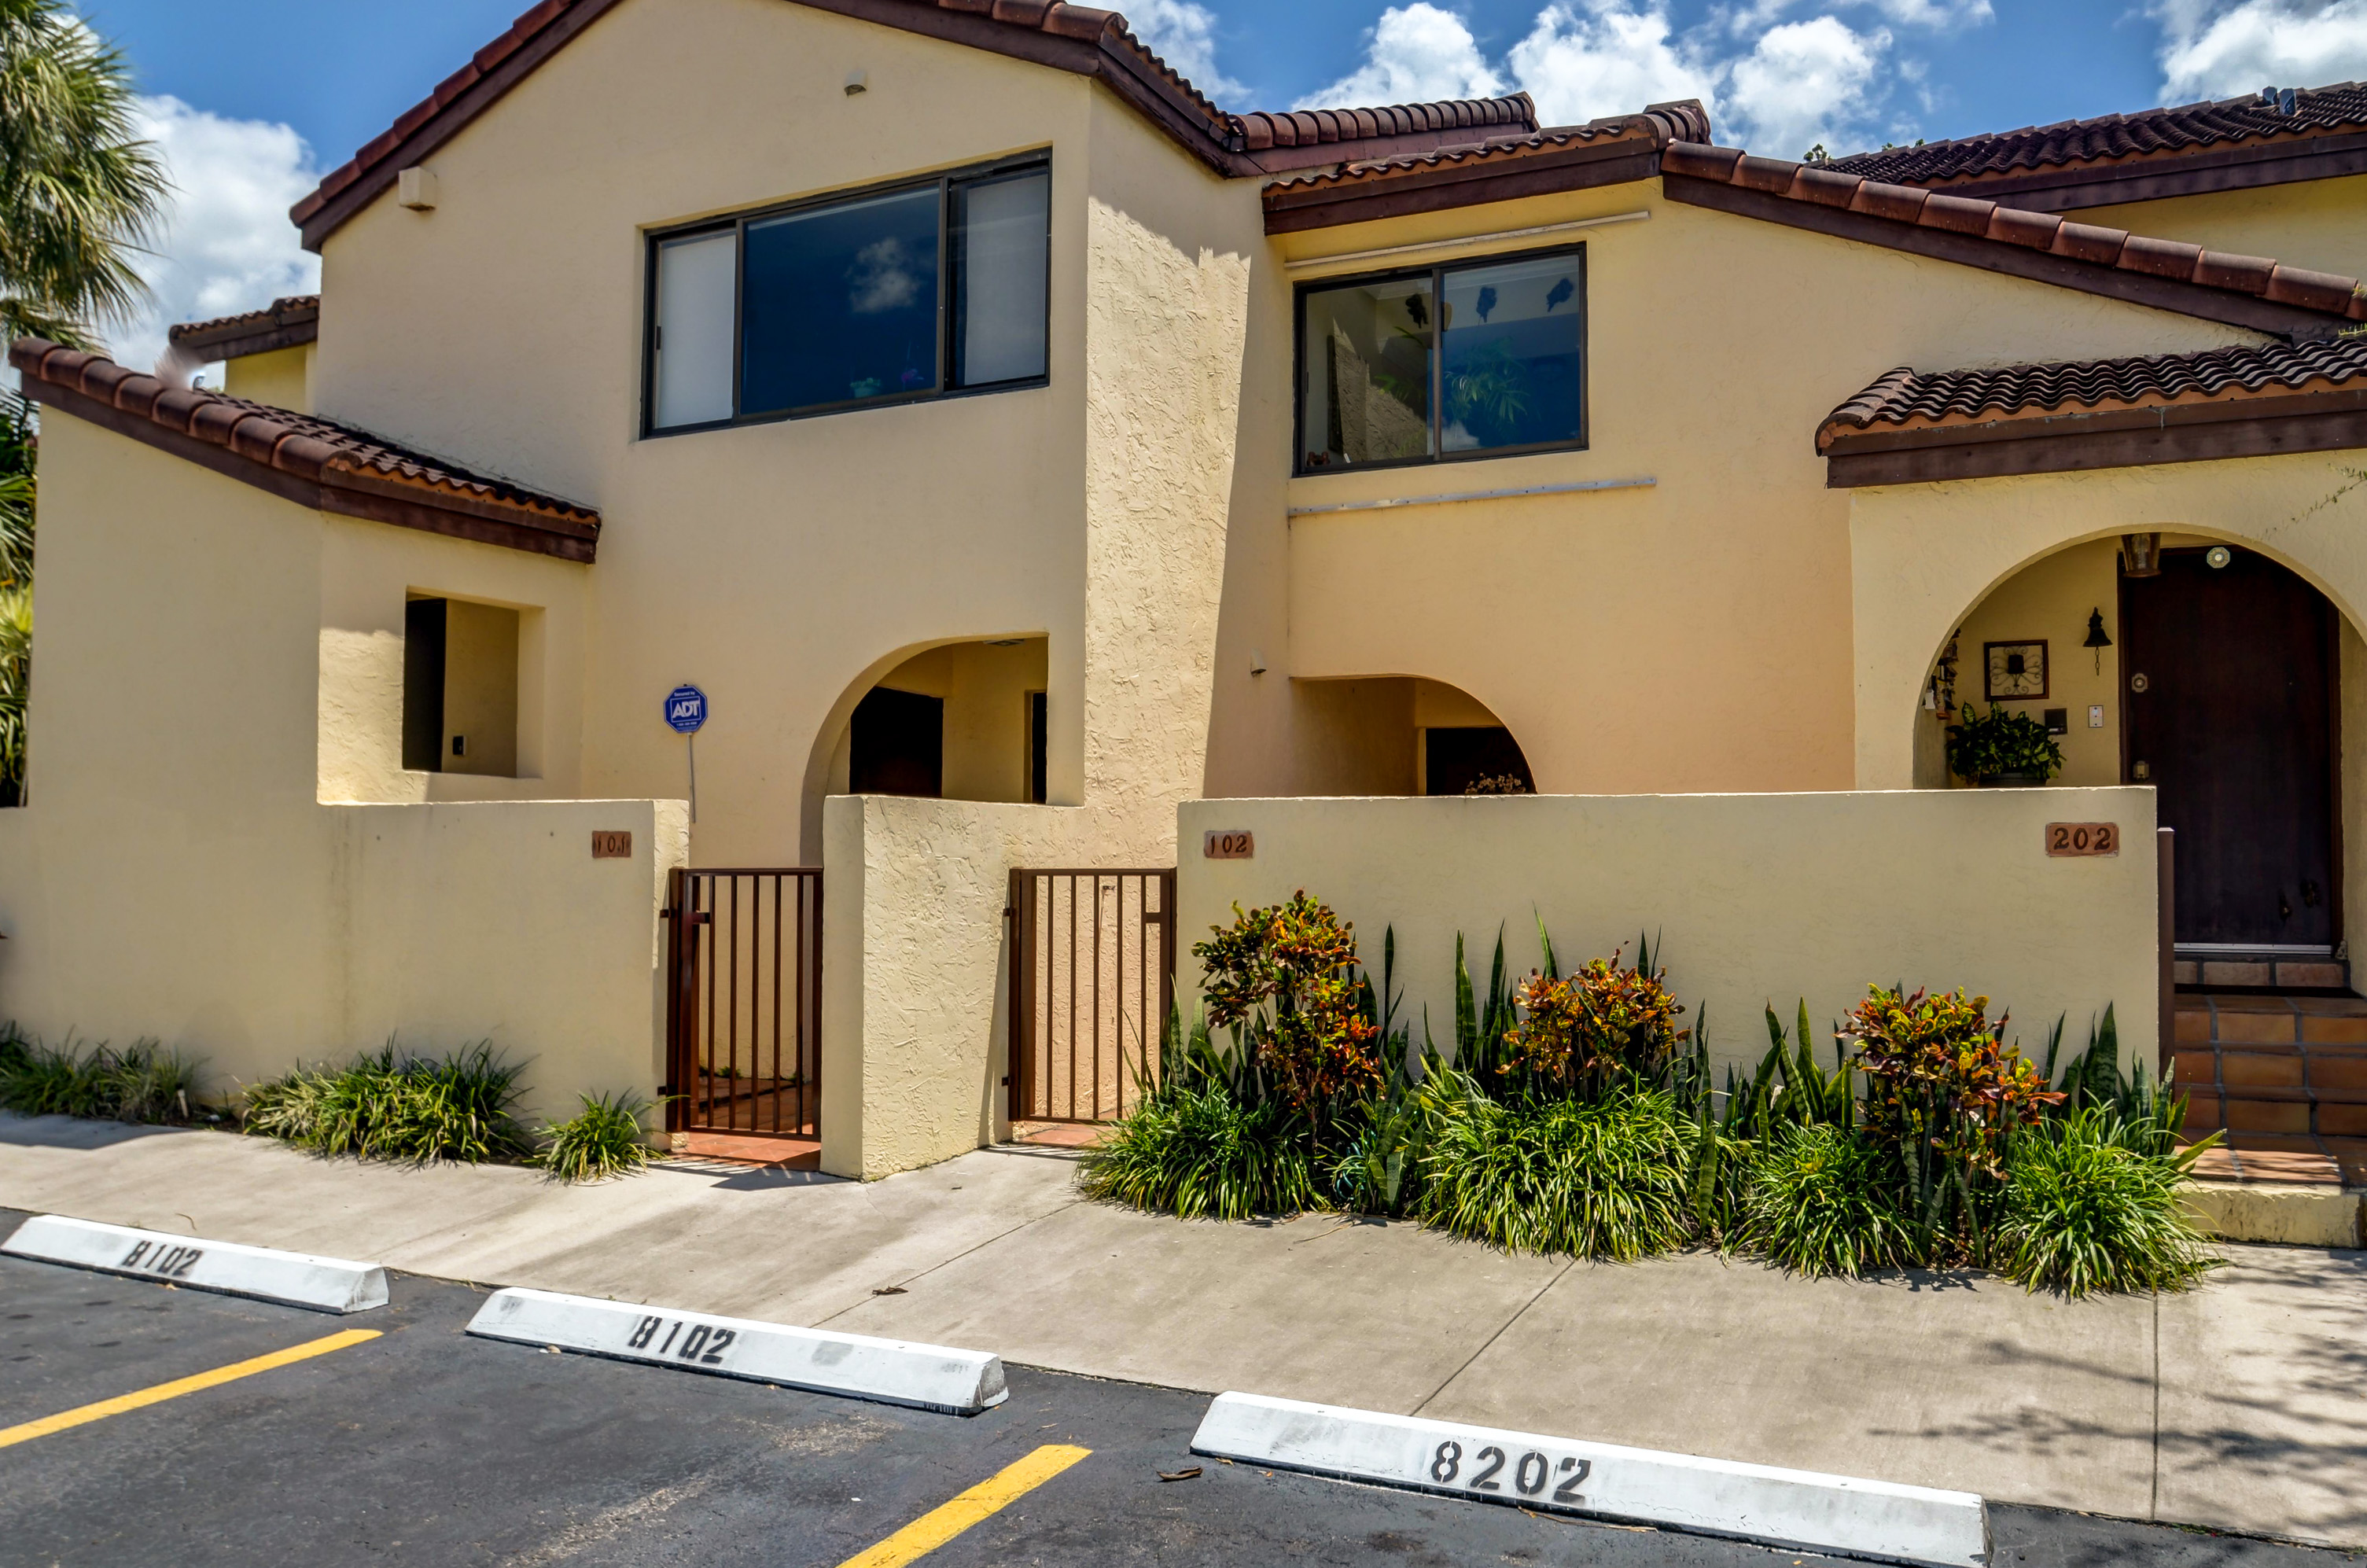 Townhouse for Sale at 9011 Sw 123rd Ct #102 9011 Sw 123rd Ct 102 Miami, Florida, 33186 United States